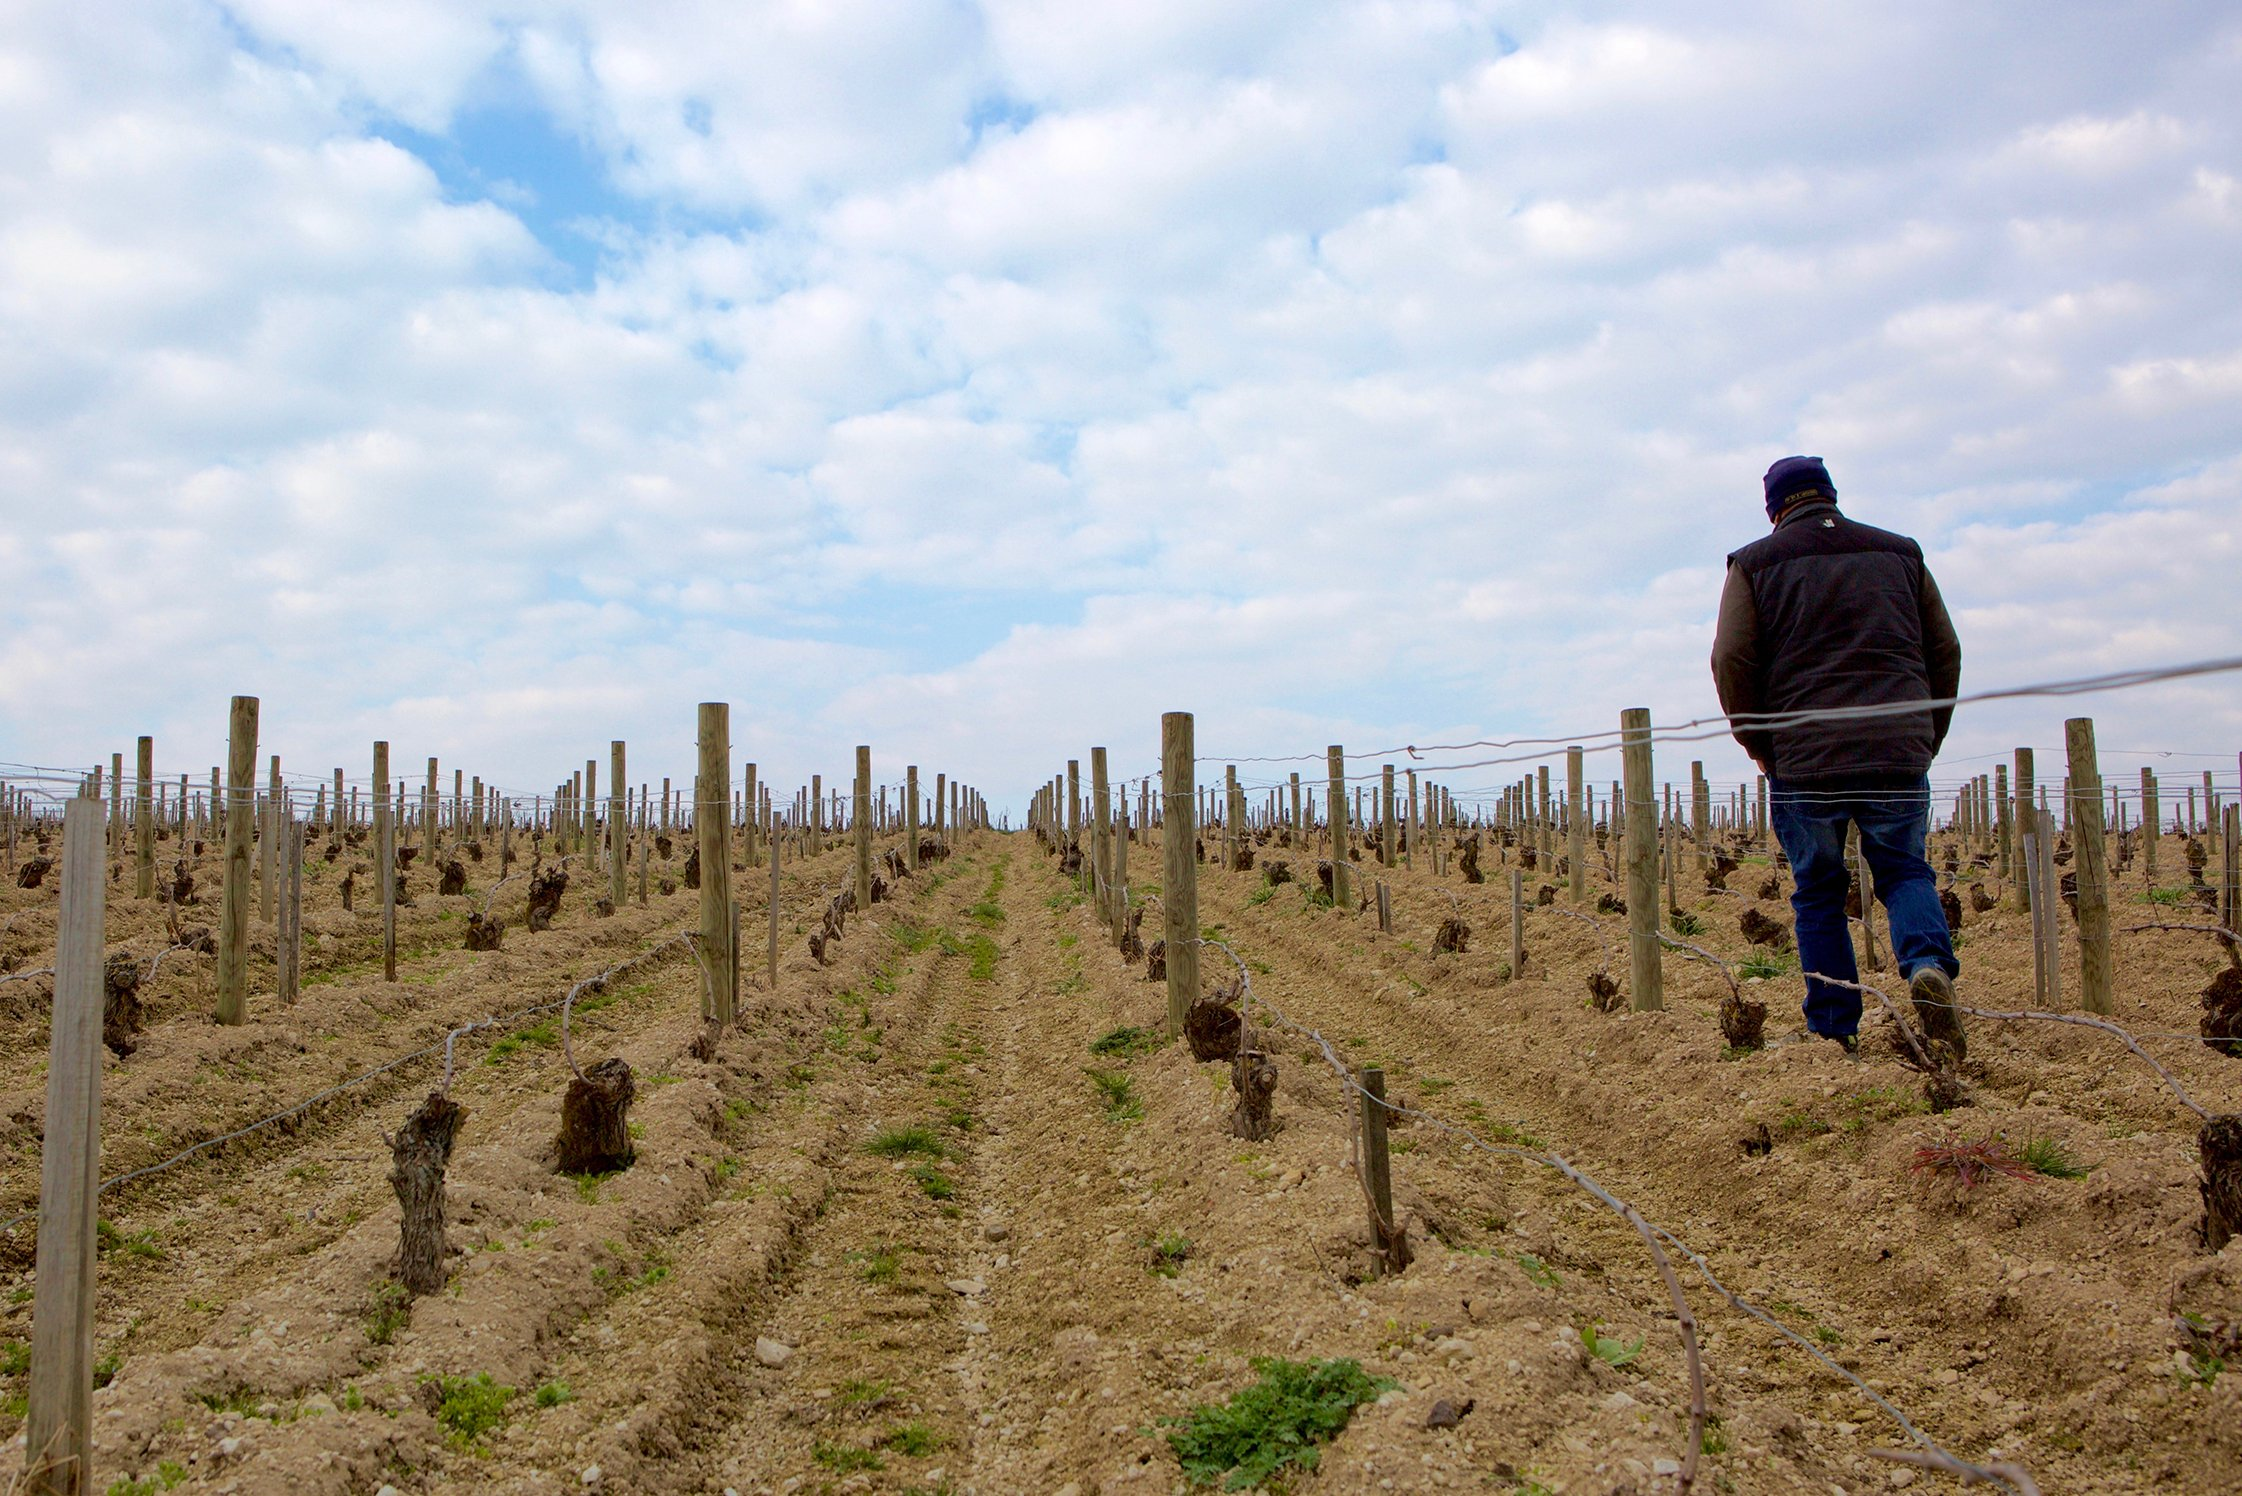 François Crochet walking through his vineyards in Sancerre